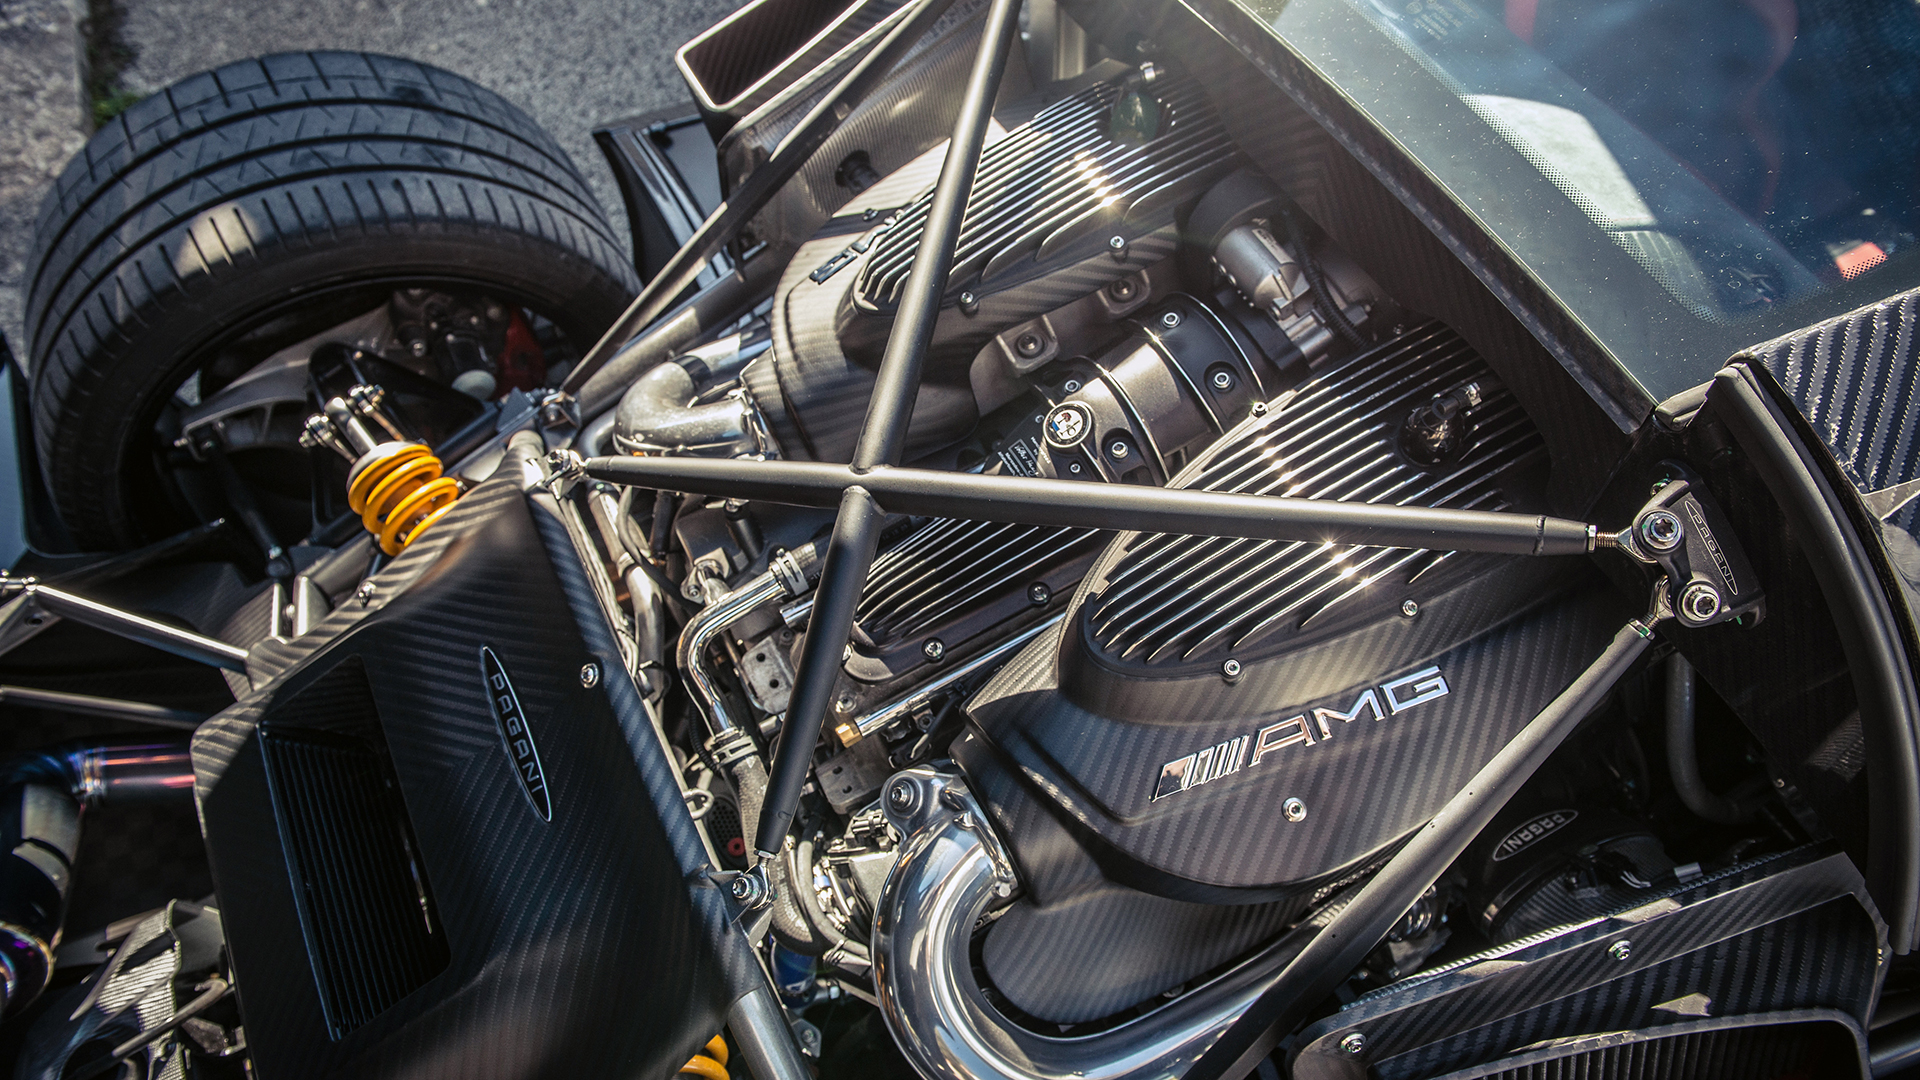 Pagani Huayra BC - 2016 - under the hood - sous le capot moteur